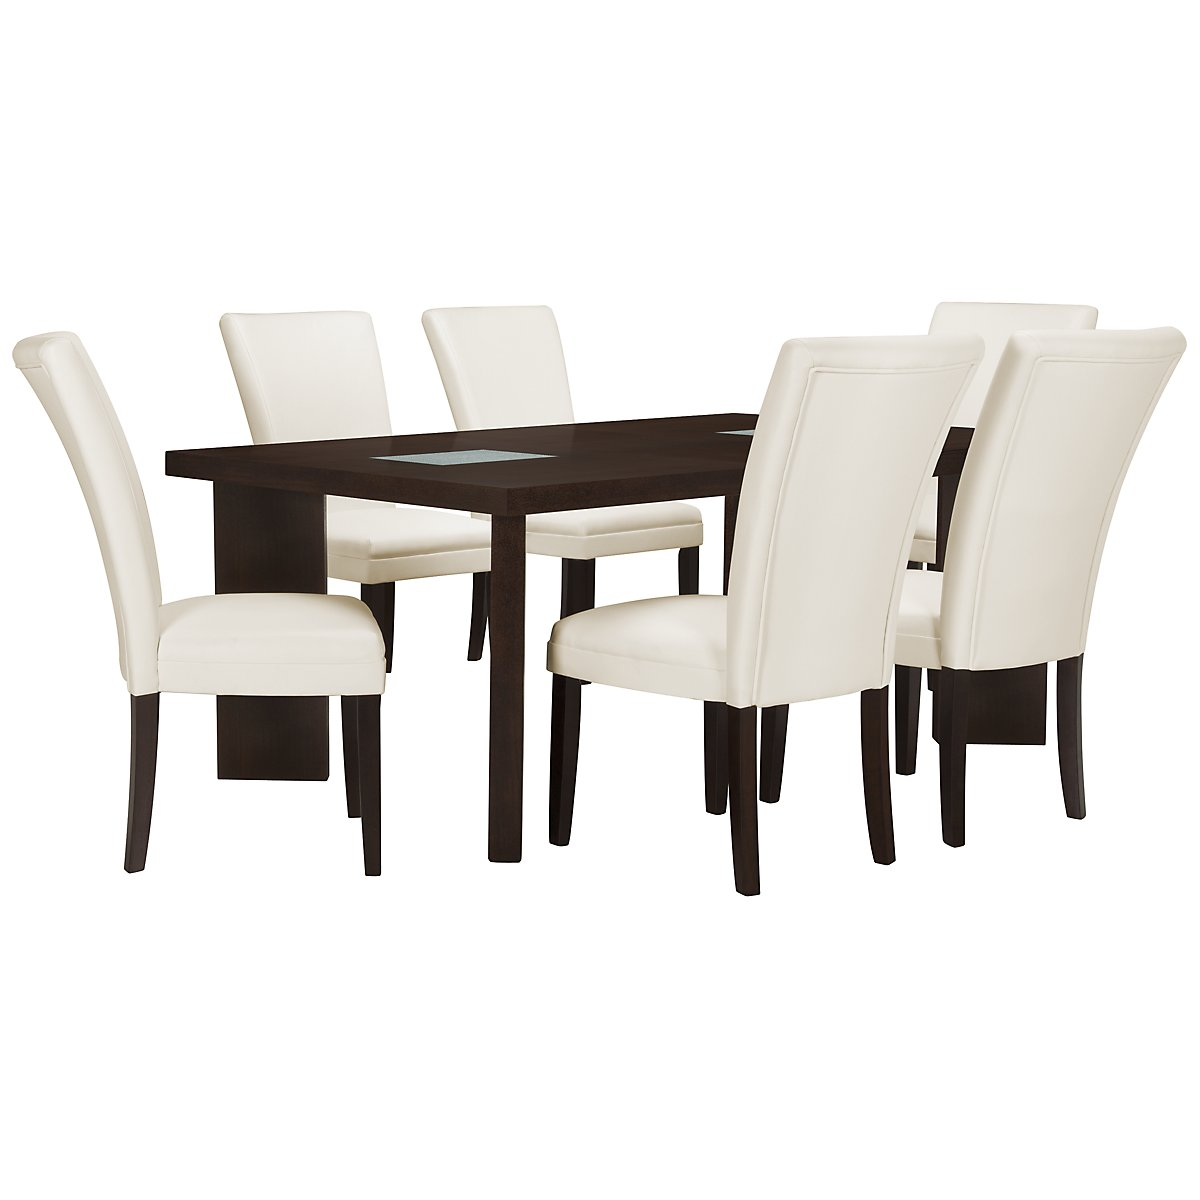 Delano2 White Rectangular Table & 4 Bonded Chairs